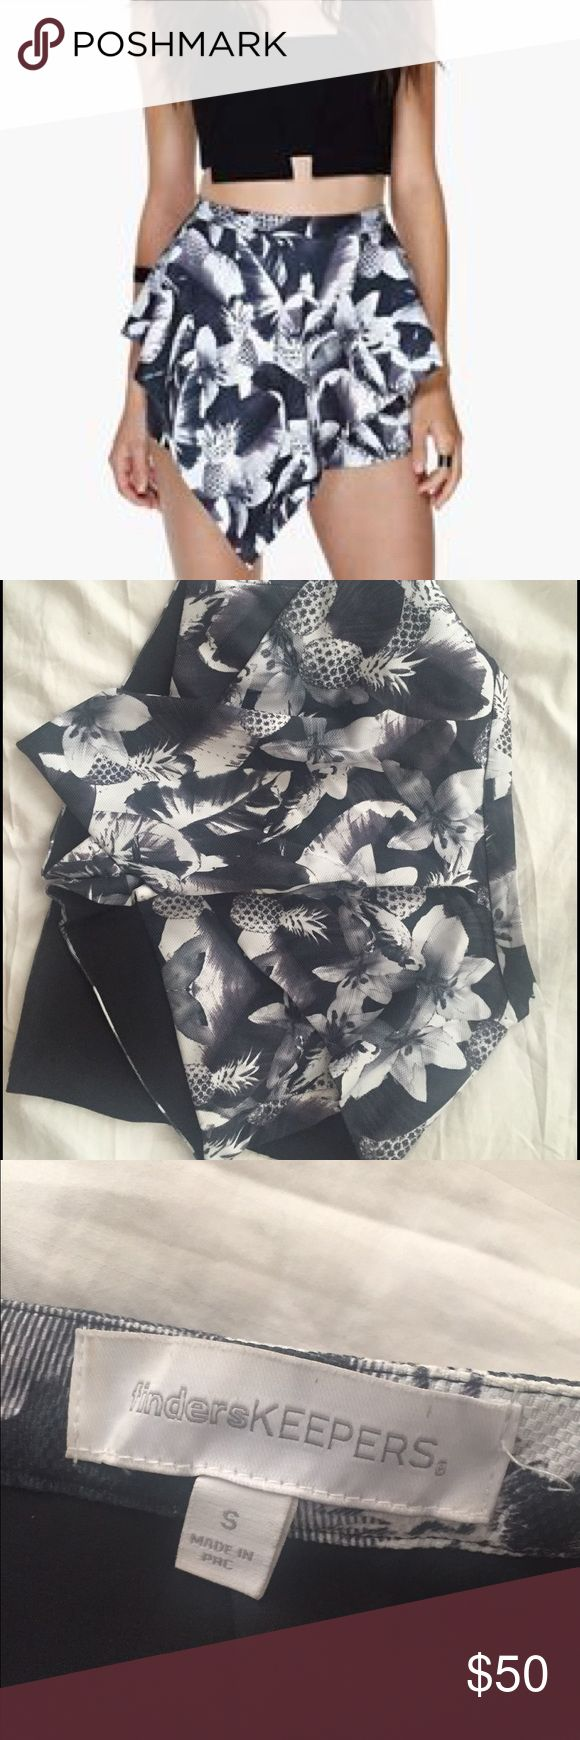 Finders keepers pineapple shorts Black, white and pineapple Finders Keepers Shorts Skorts